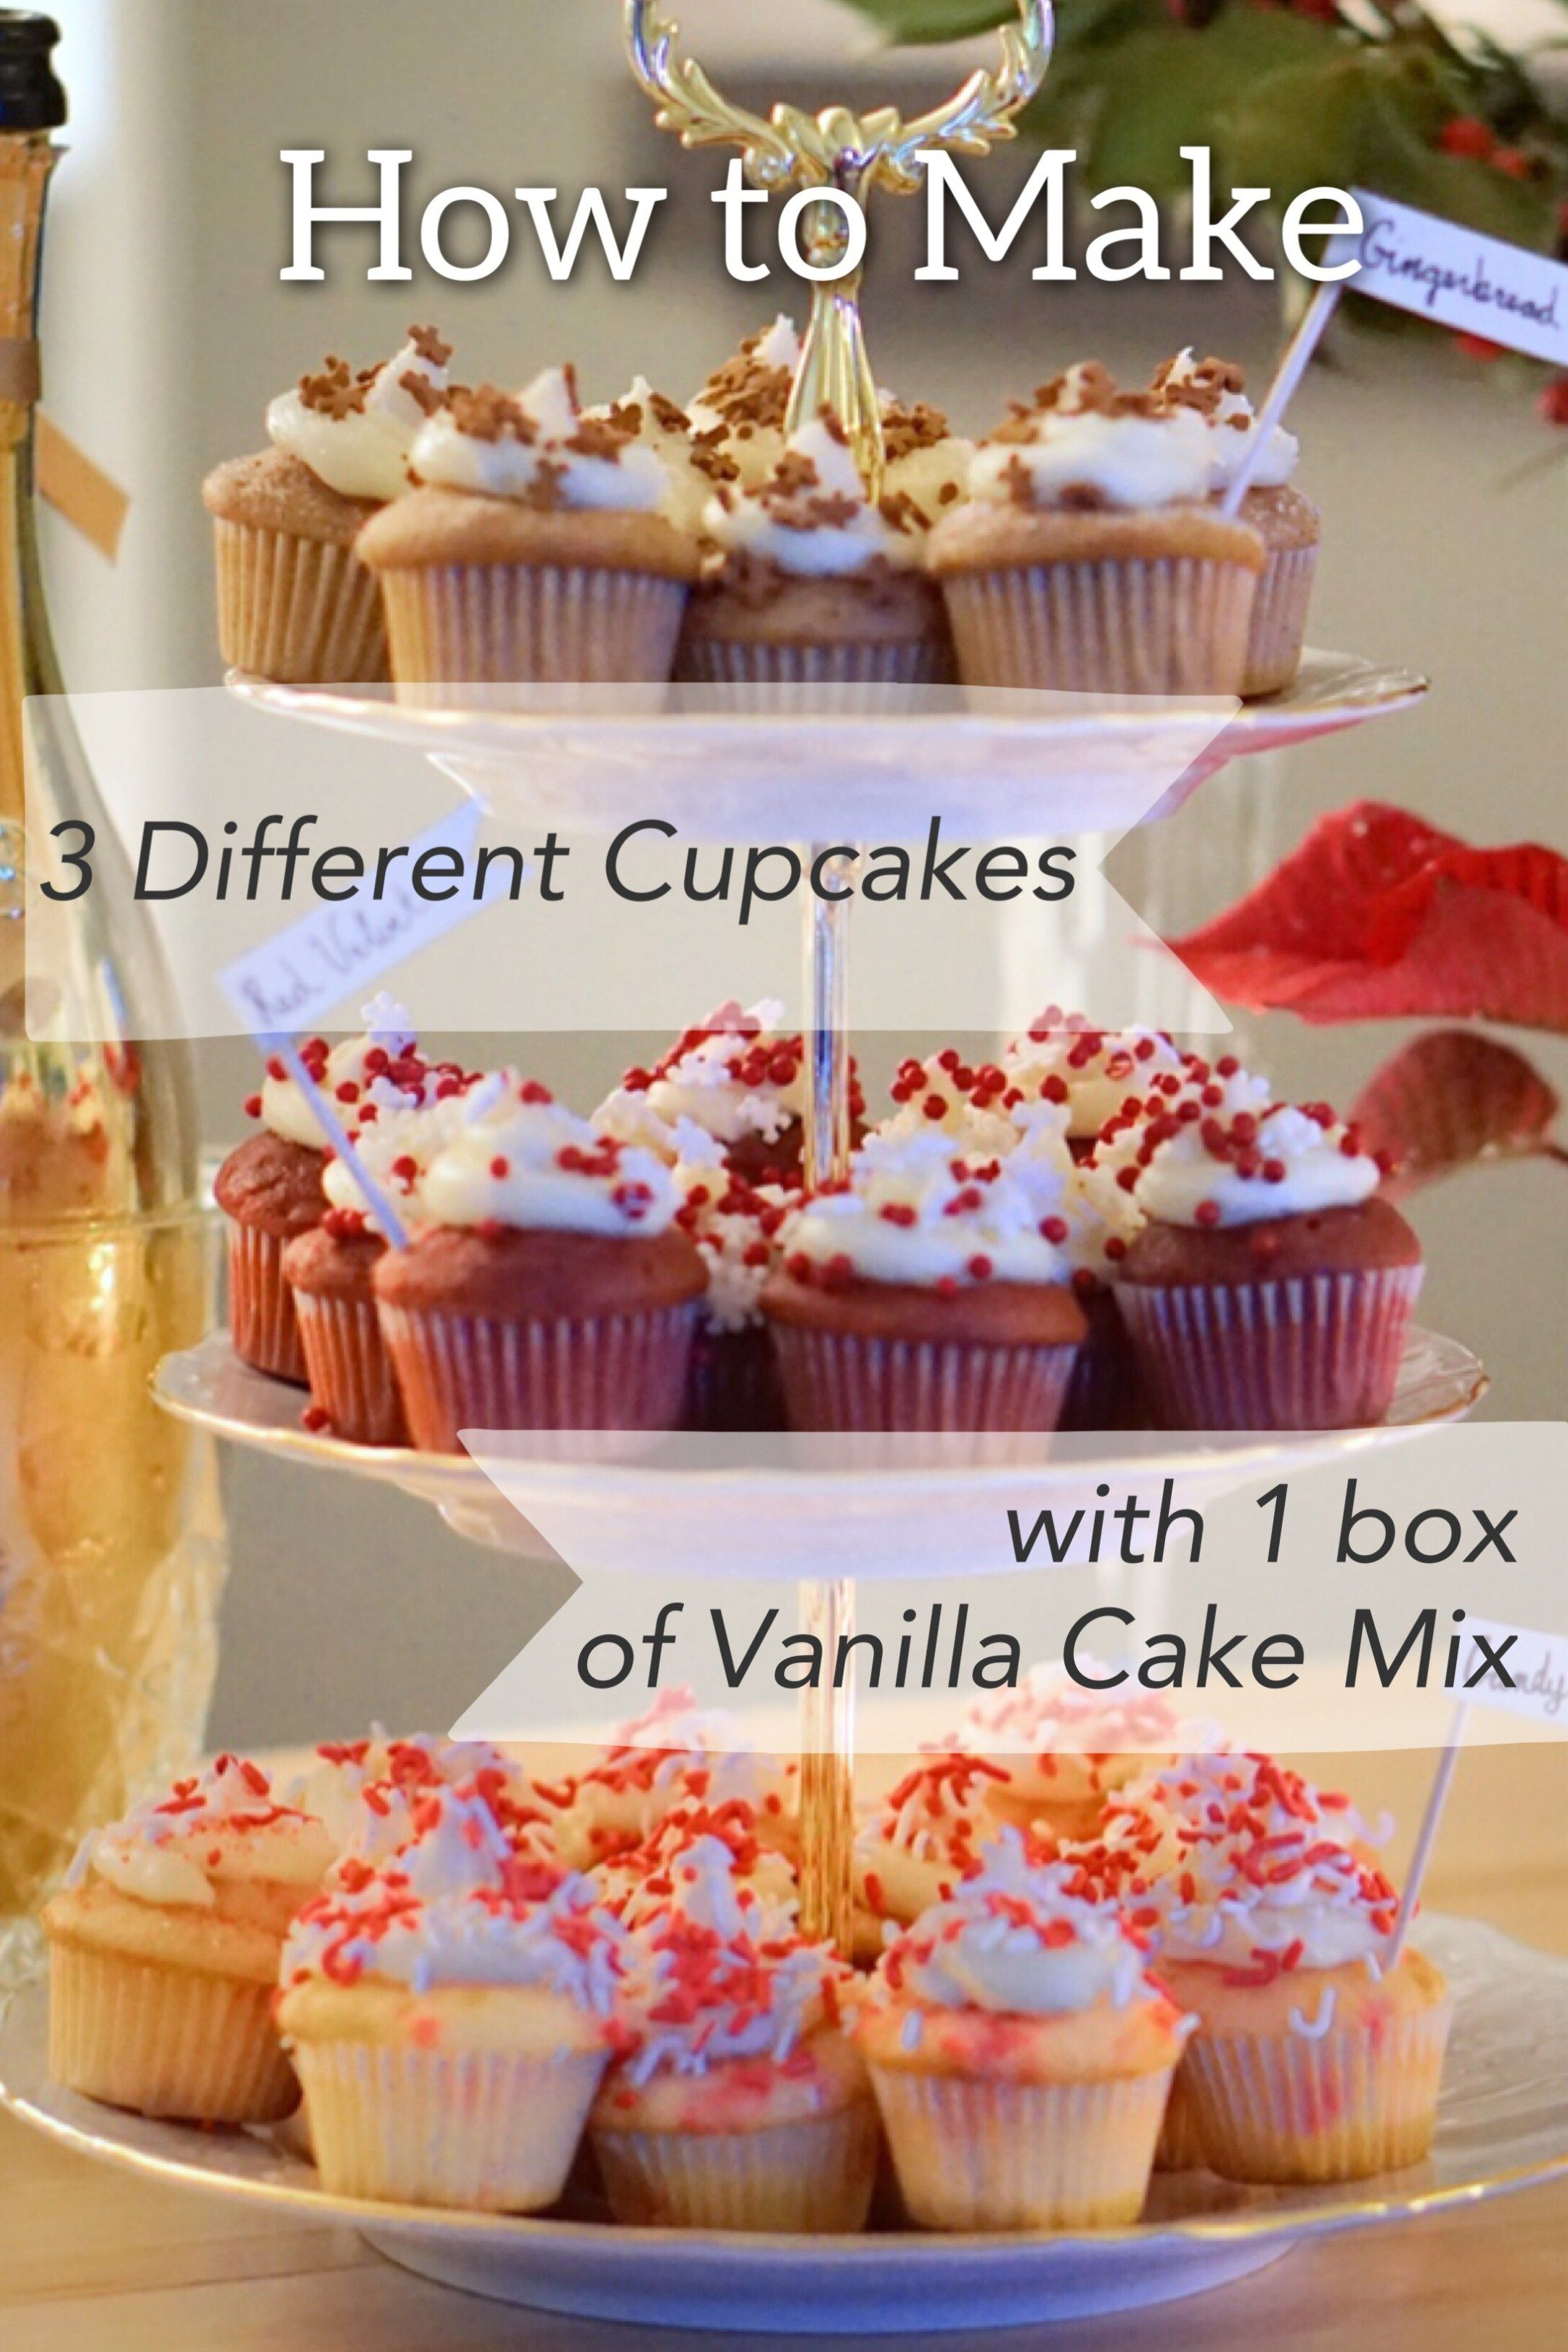 How To Make 3 Different Flavor Cupcakes With 1 Box Of Vanilla Cake